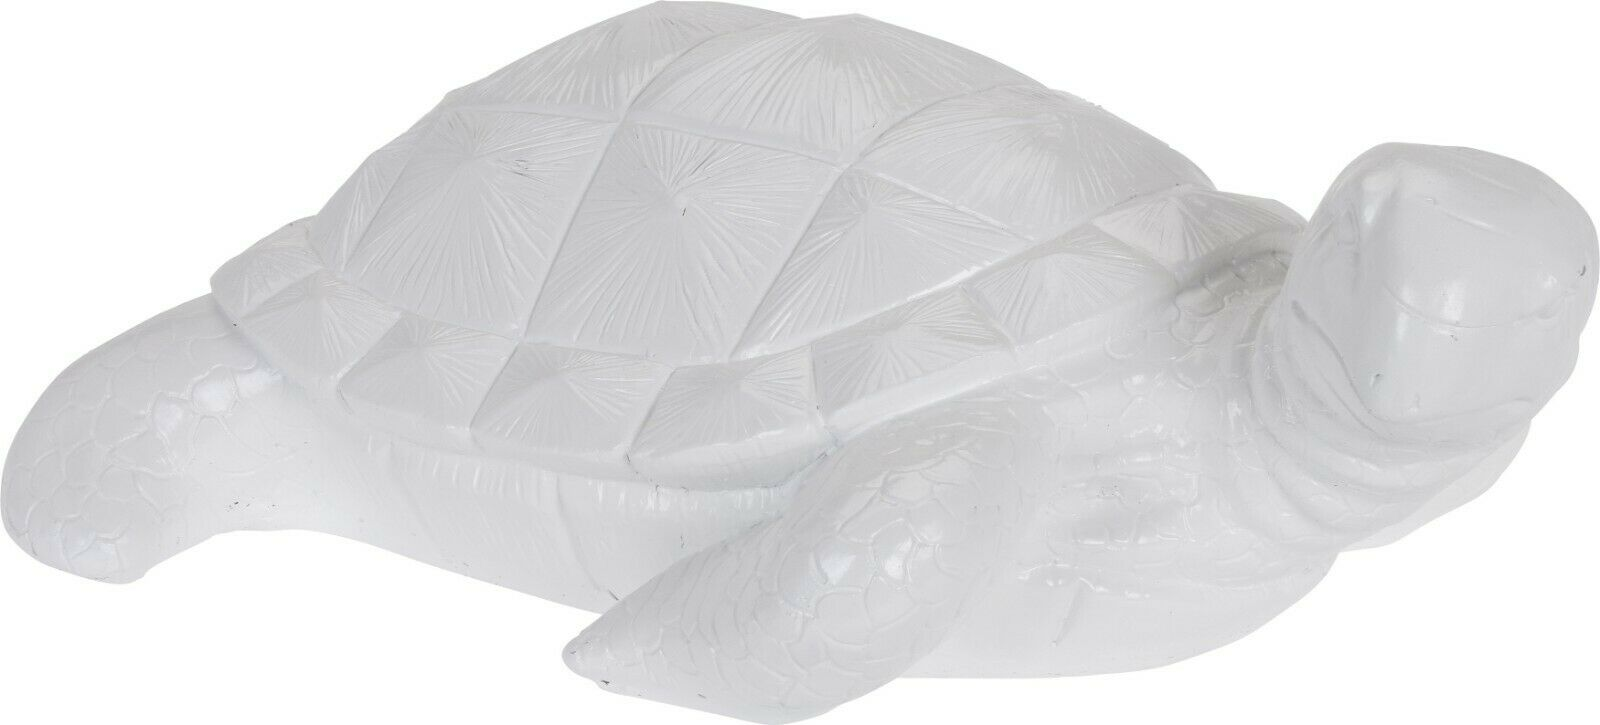 Large 52cm White Turtle Garden Ornament Indoor Outdoor Pond Feature